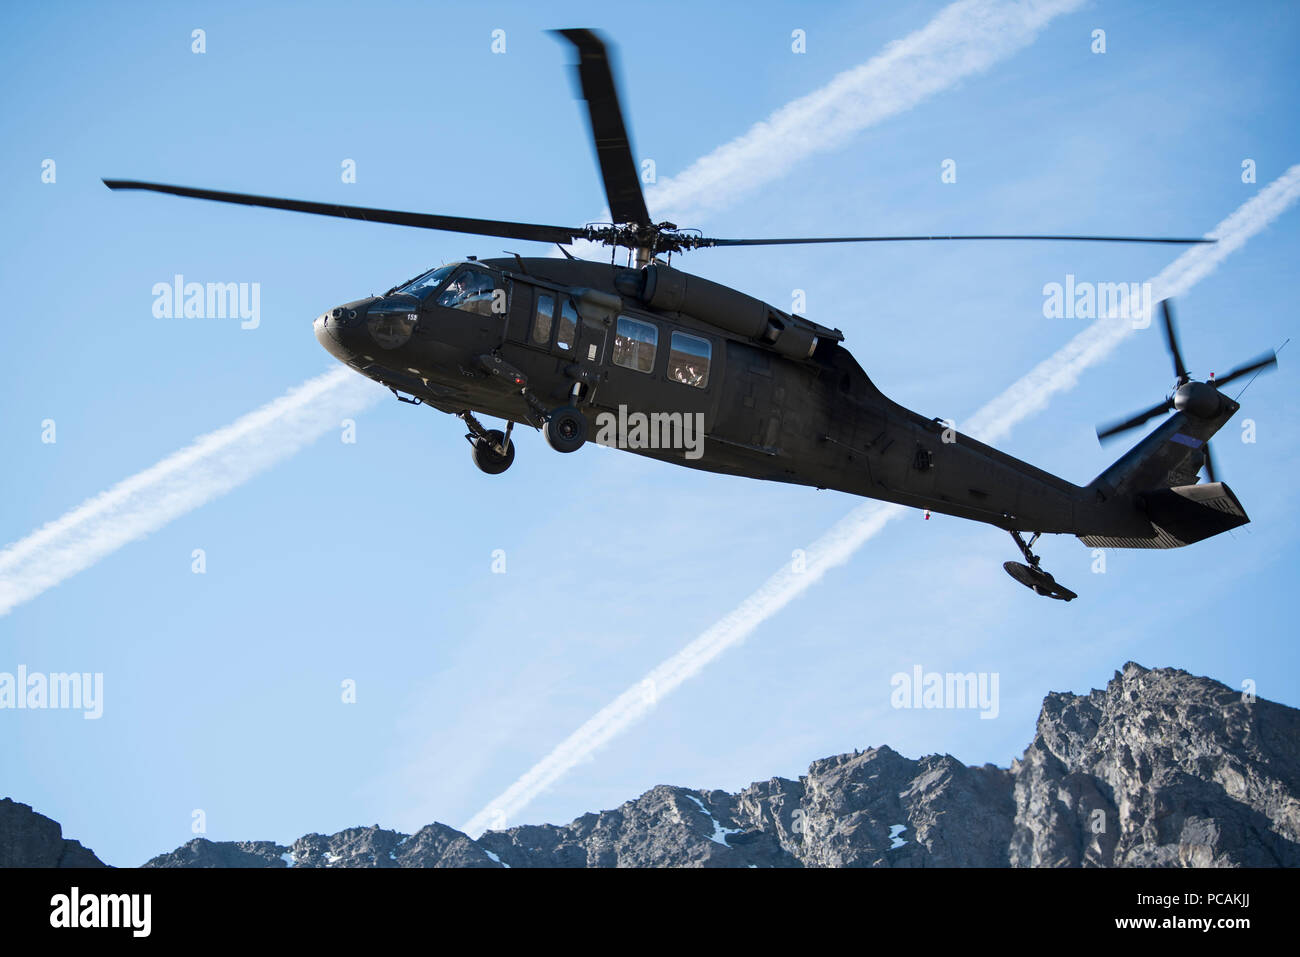 An Alaska Air National Guard UH-60 Black Hawk transports U.S. Marines with Delta Company, Law Enforcement Battalion from Marine Corps Reserve Center, Billings, Montana, to casualty evacuation training at Joint Base Elmendorf-Richardson, Alaska, July 19, 2018. Training included land navigation, calls for fire, squad ambushes, reconnaissance patrols, an casualty aid and evacuation. (U.S. Air Force photo by Airman 1st Class Caitlin Russell) - Stock Image